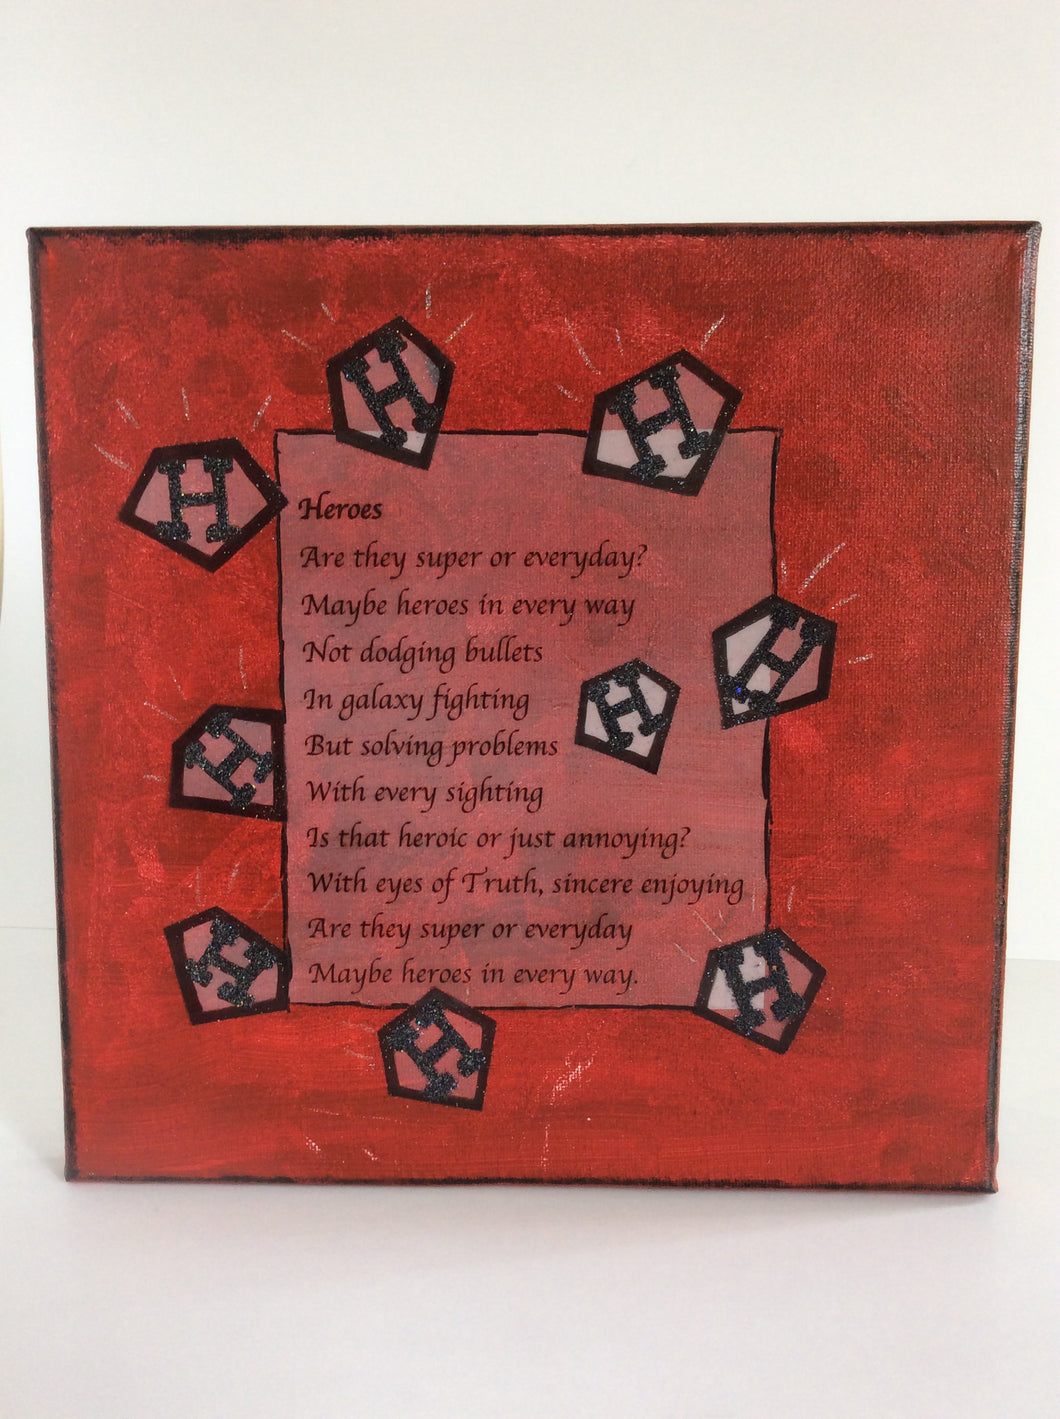 Heroes is an original poem on canvas shown in red from poempieces.com